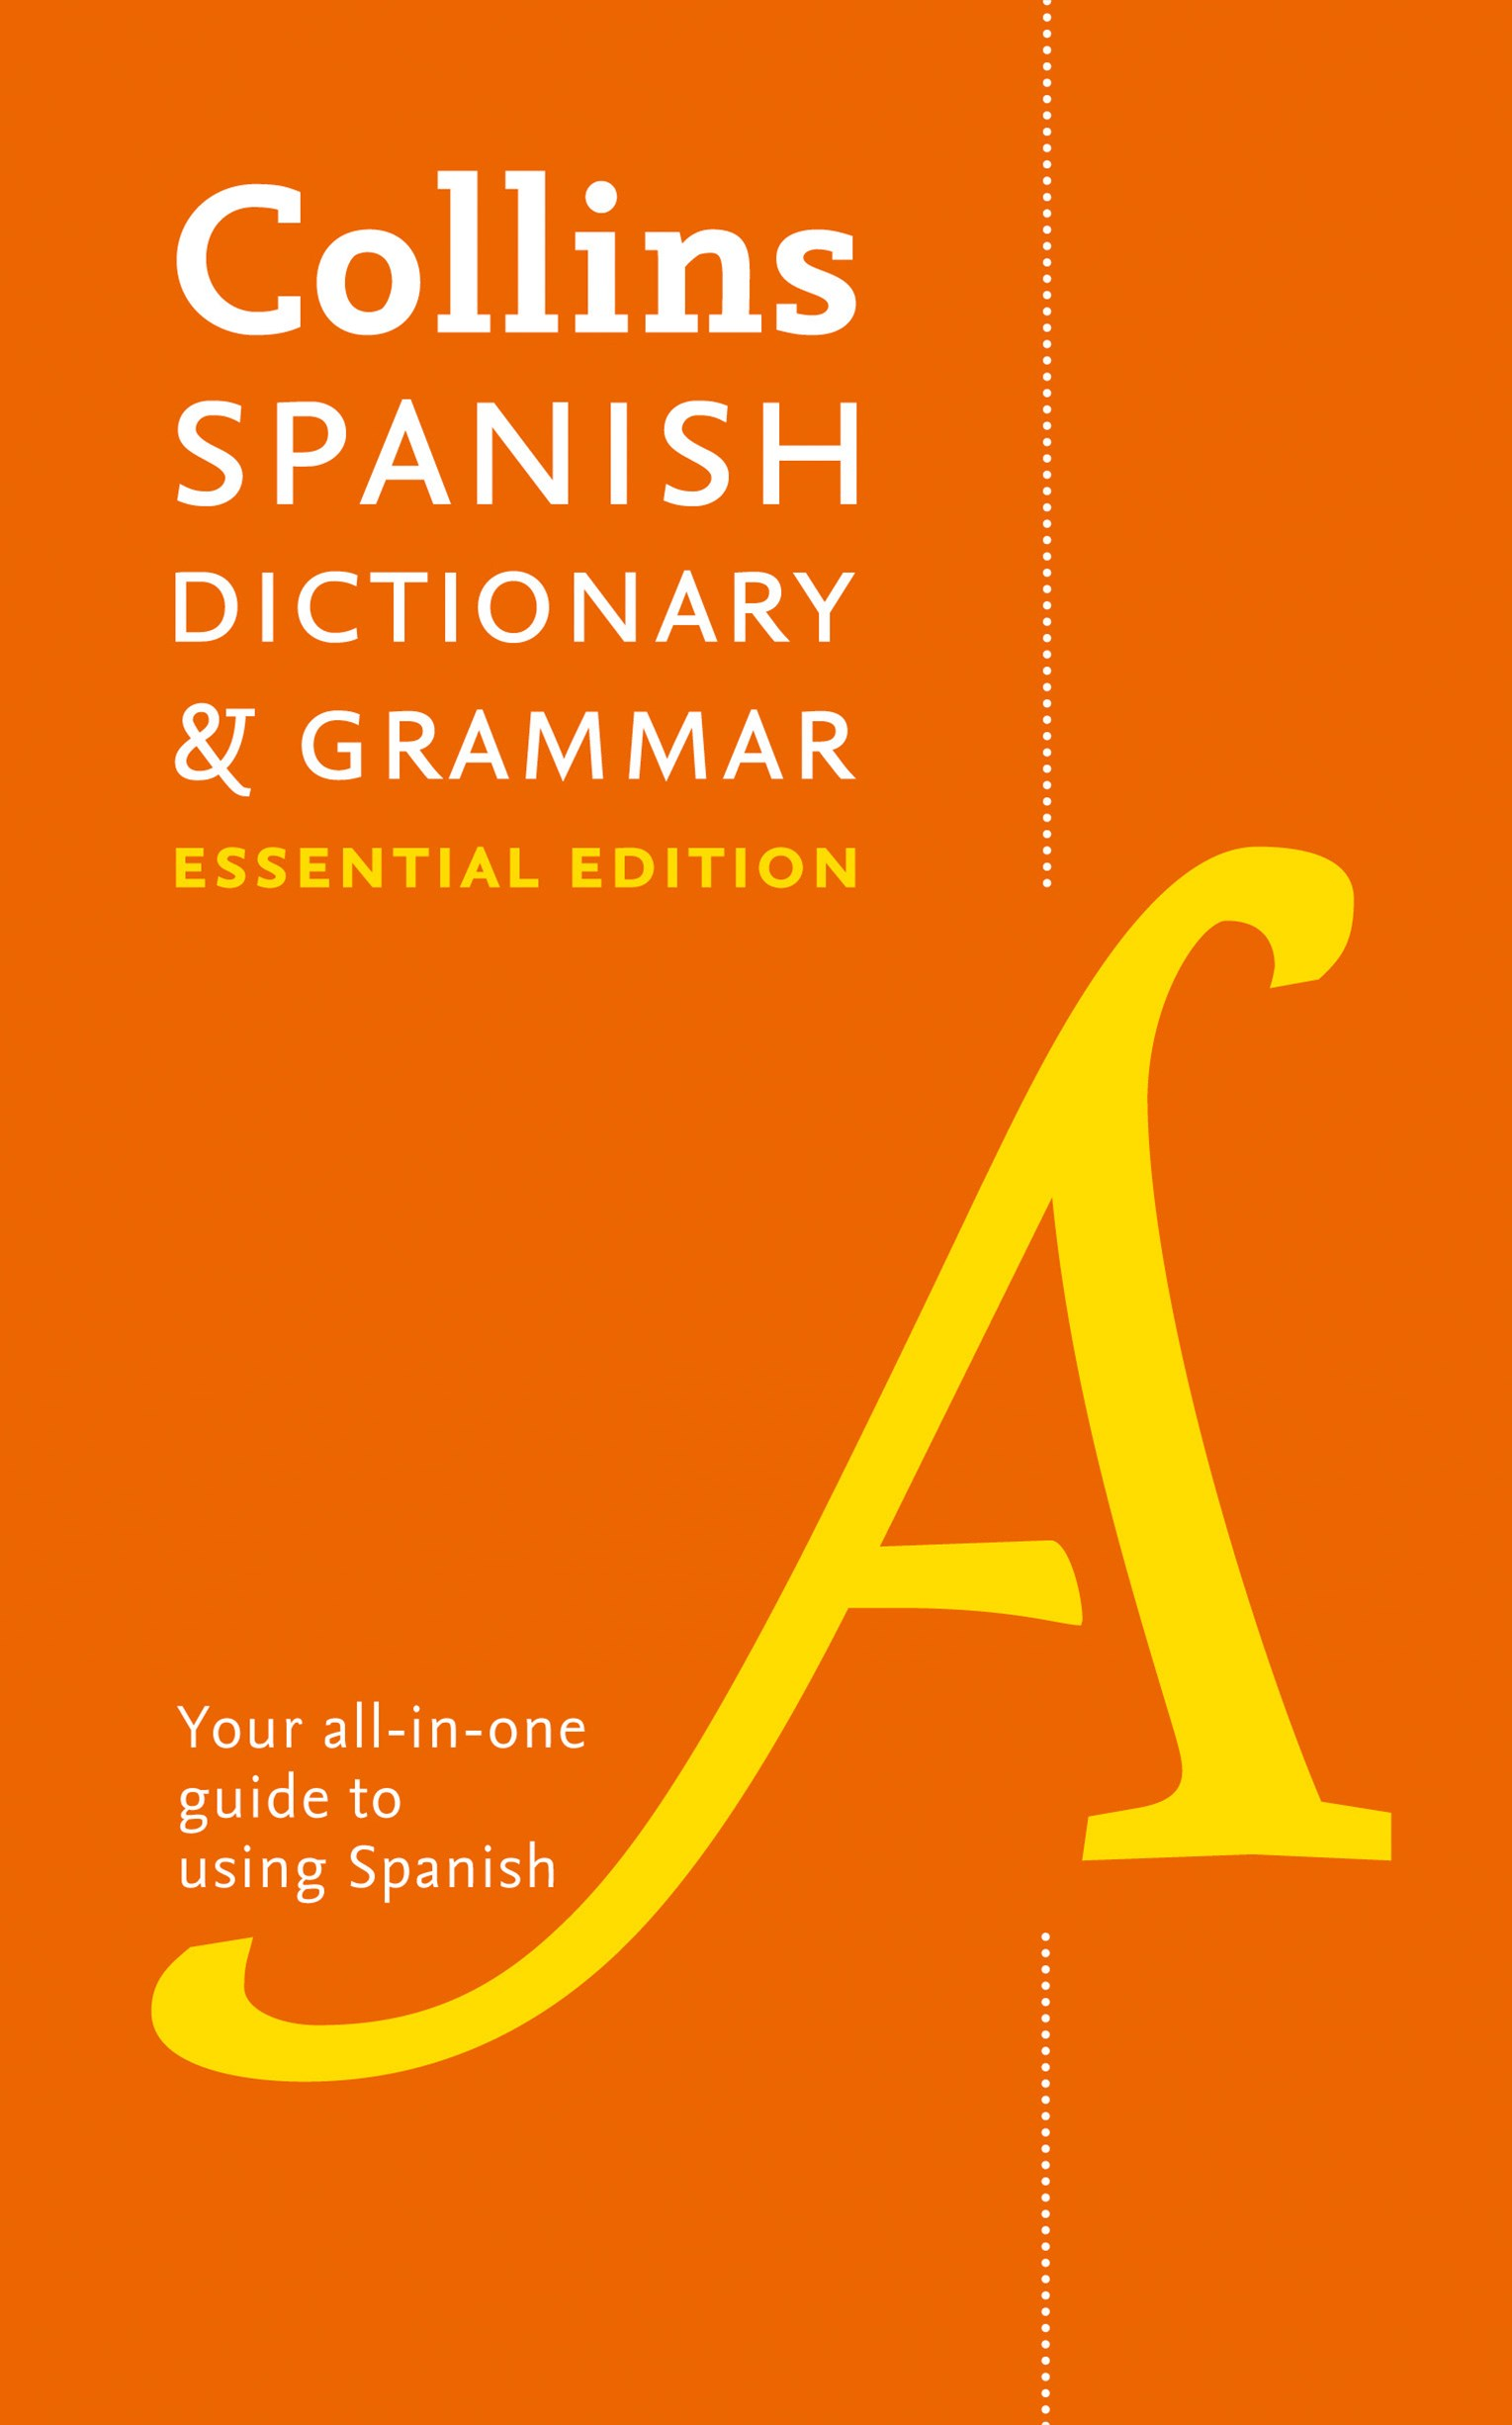 Collins Spanish Dictionary And Grammar: Essential Edition